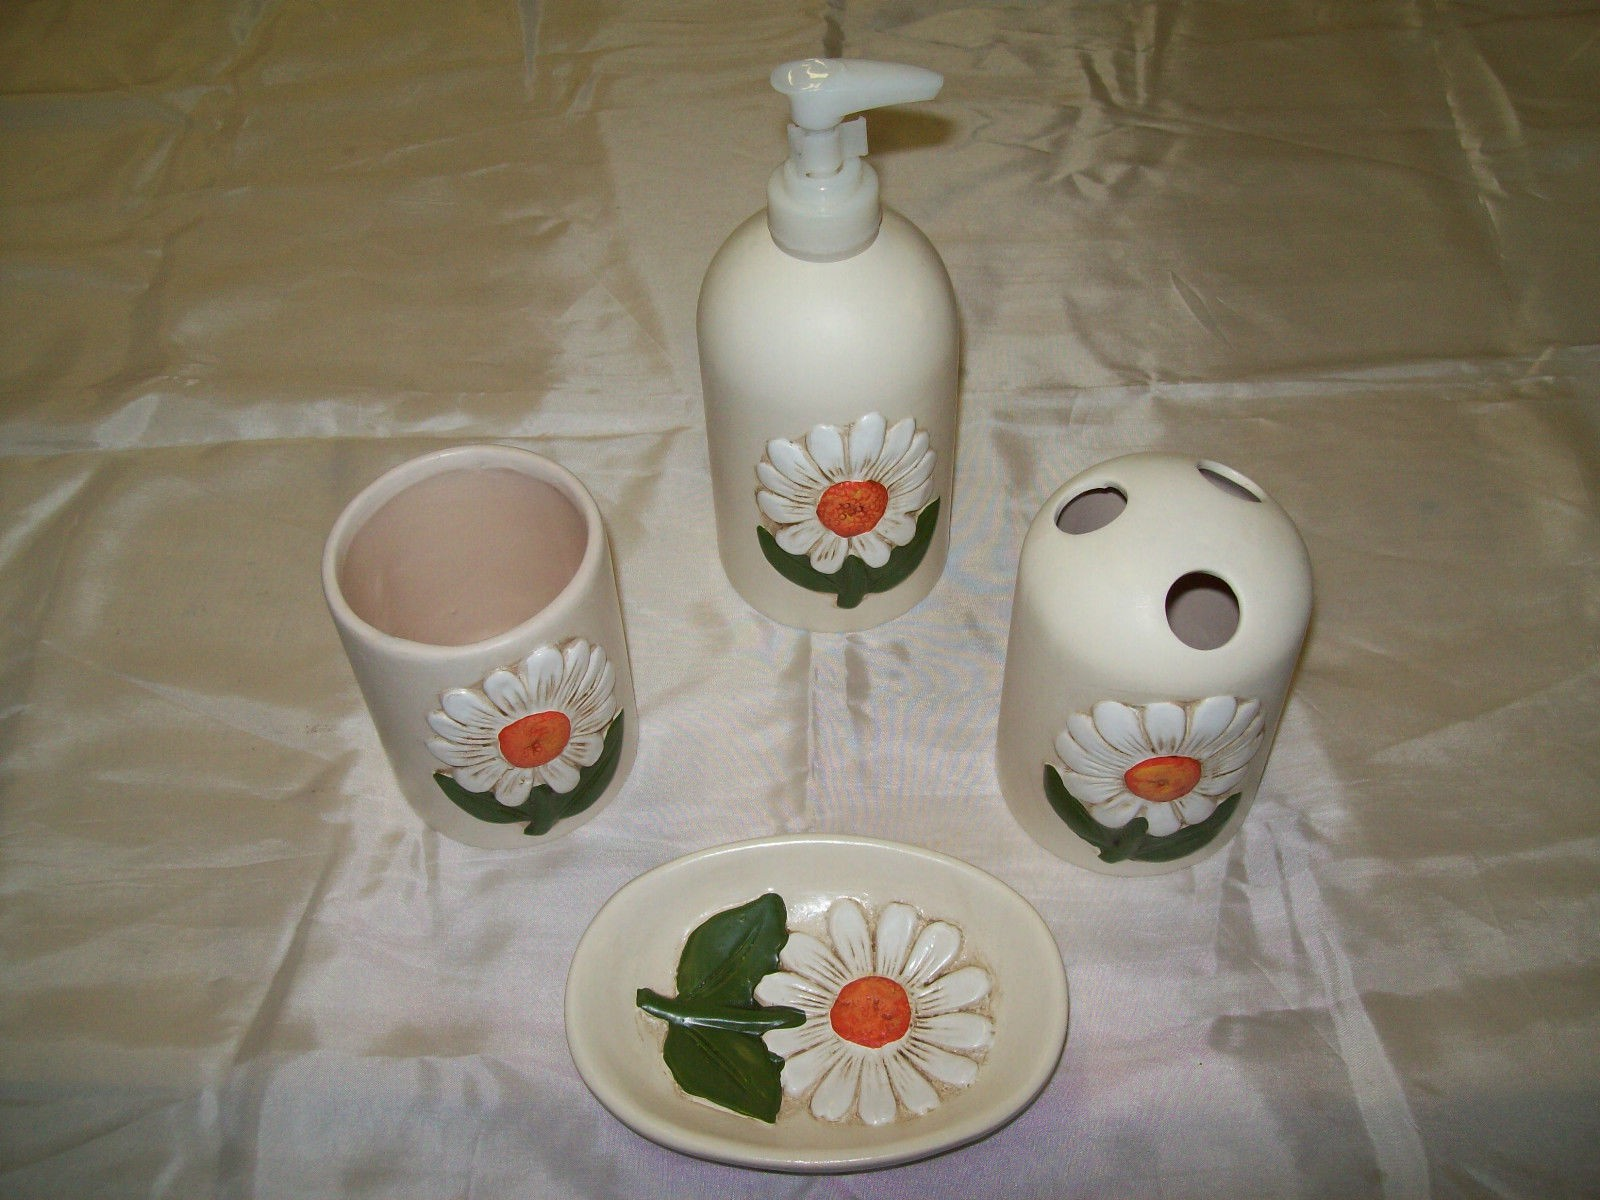 Bathroom set pieces ceramic like thun